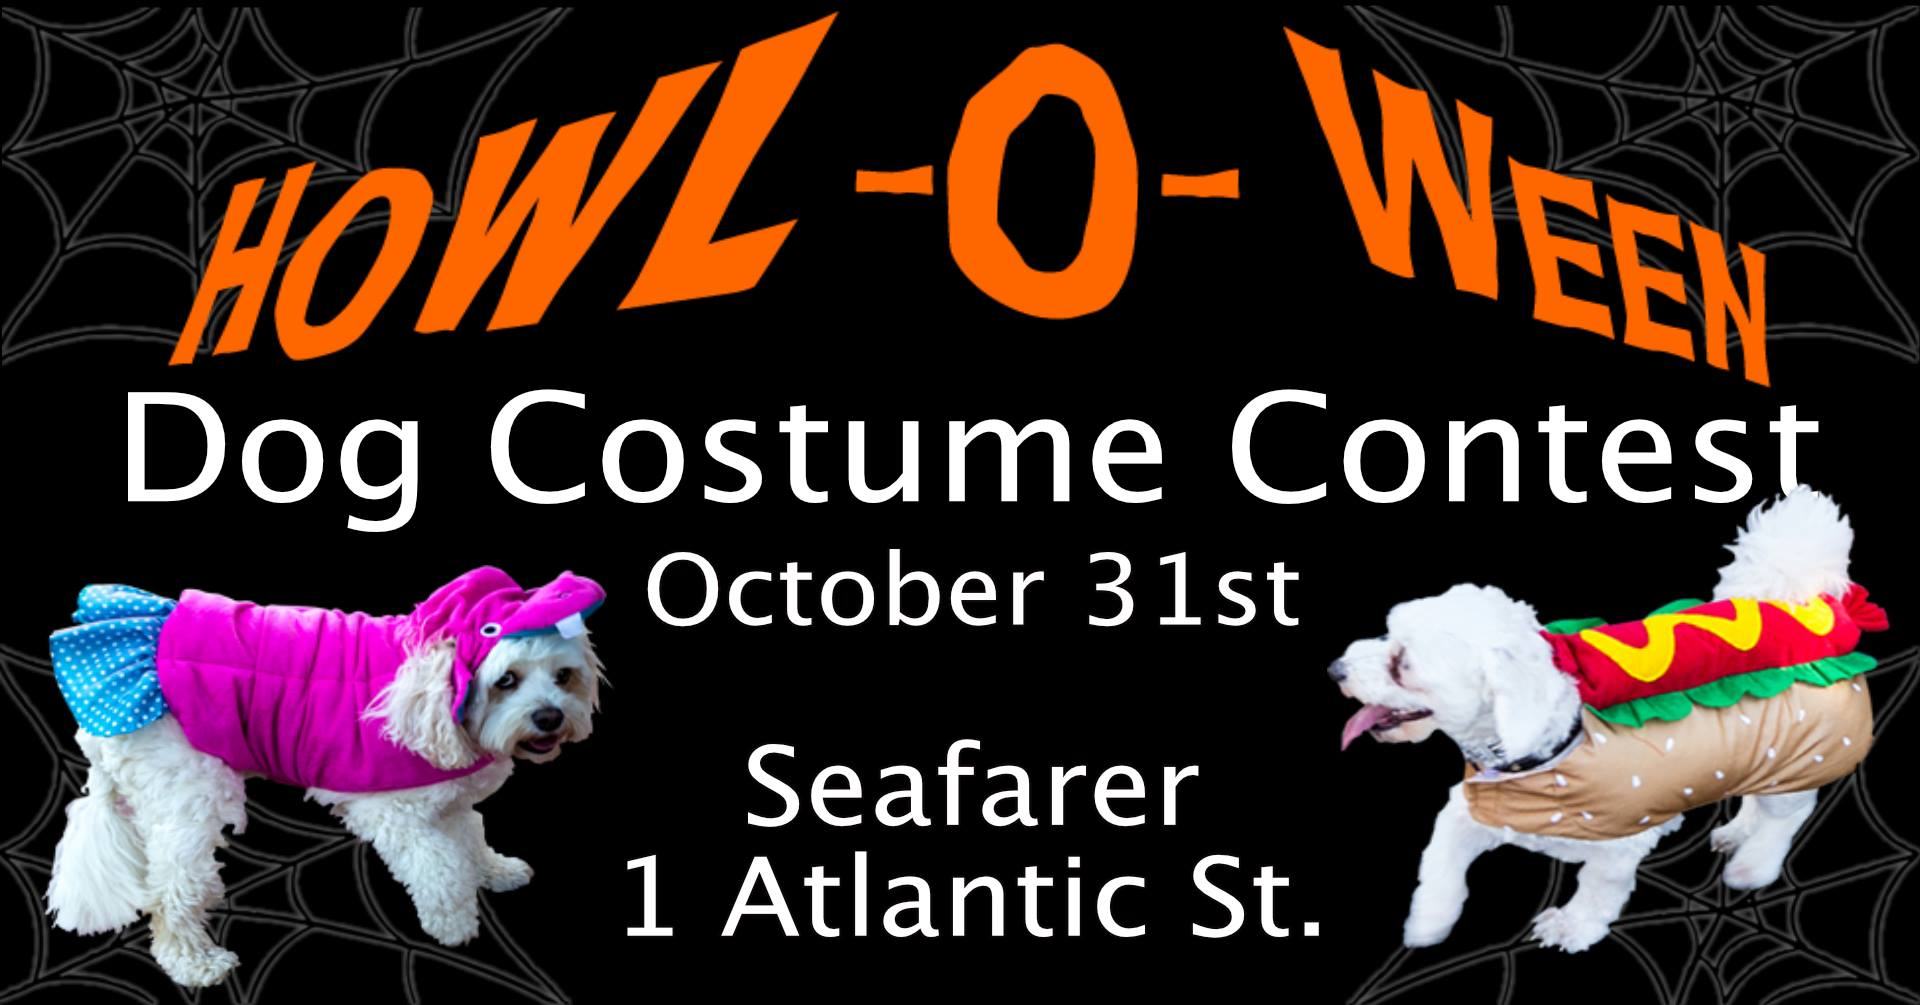 Halloween Events For Dogs 2020 Highlands Annual Howl O Ween To Crown Pets With Best Costumes